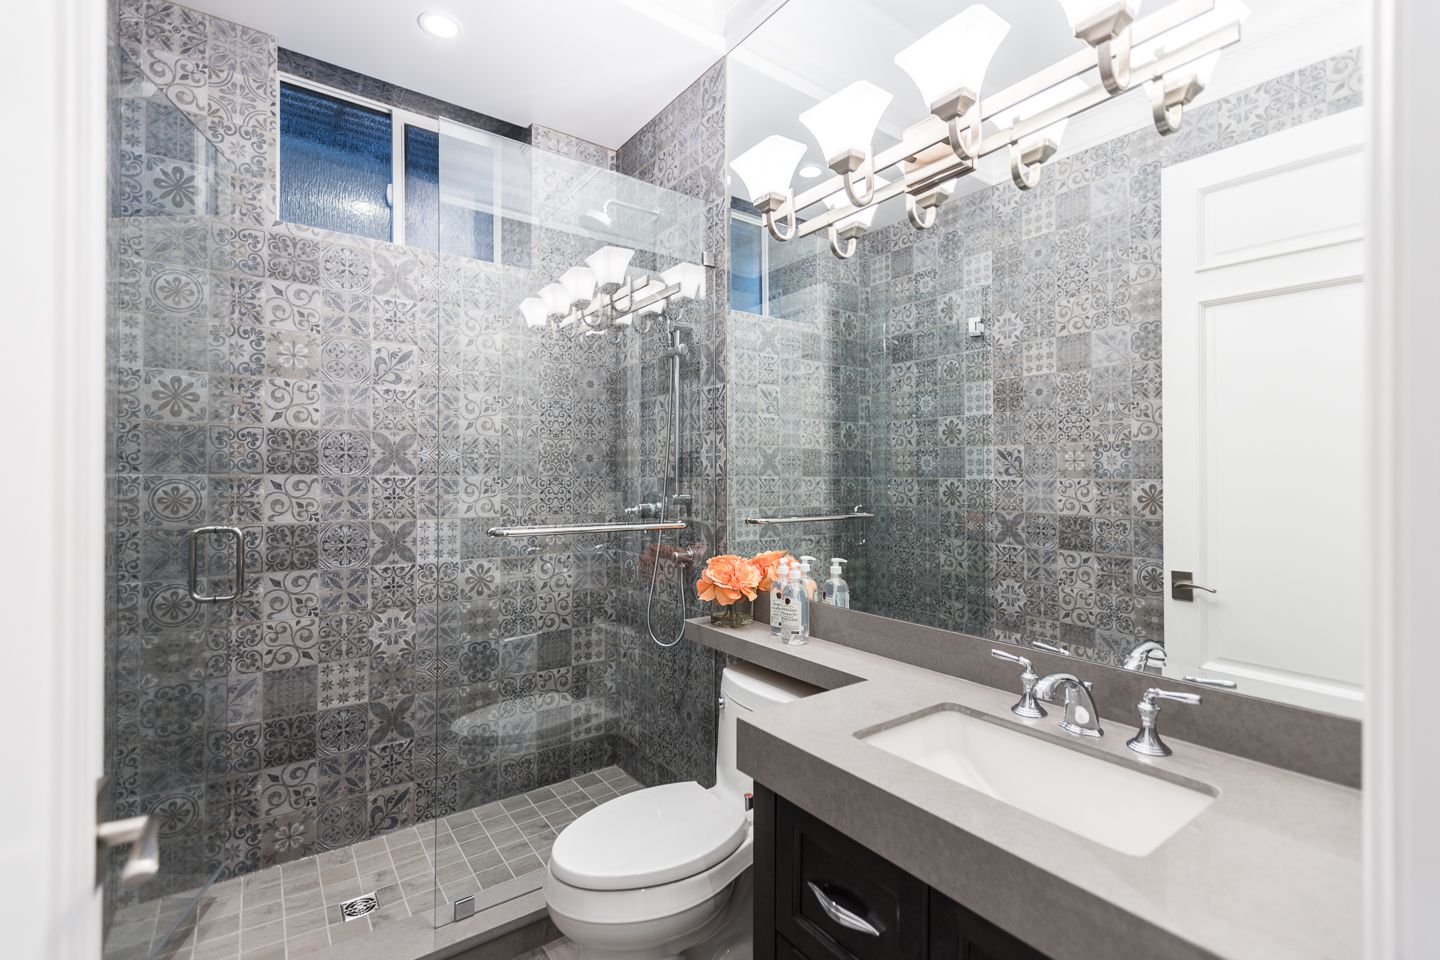 Photo 48: Photos: 1744 WEST 61ST AVE in VANCOUVER: South Granville House for sale (Vancouver West)  : MLS®# R2546980